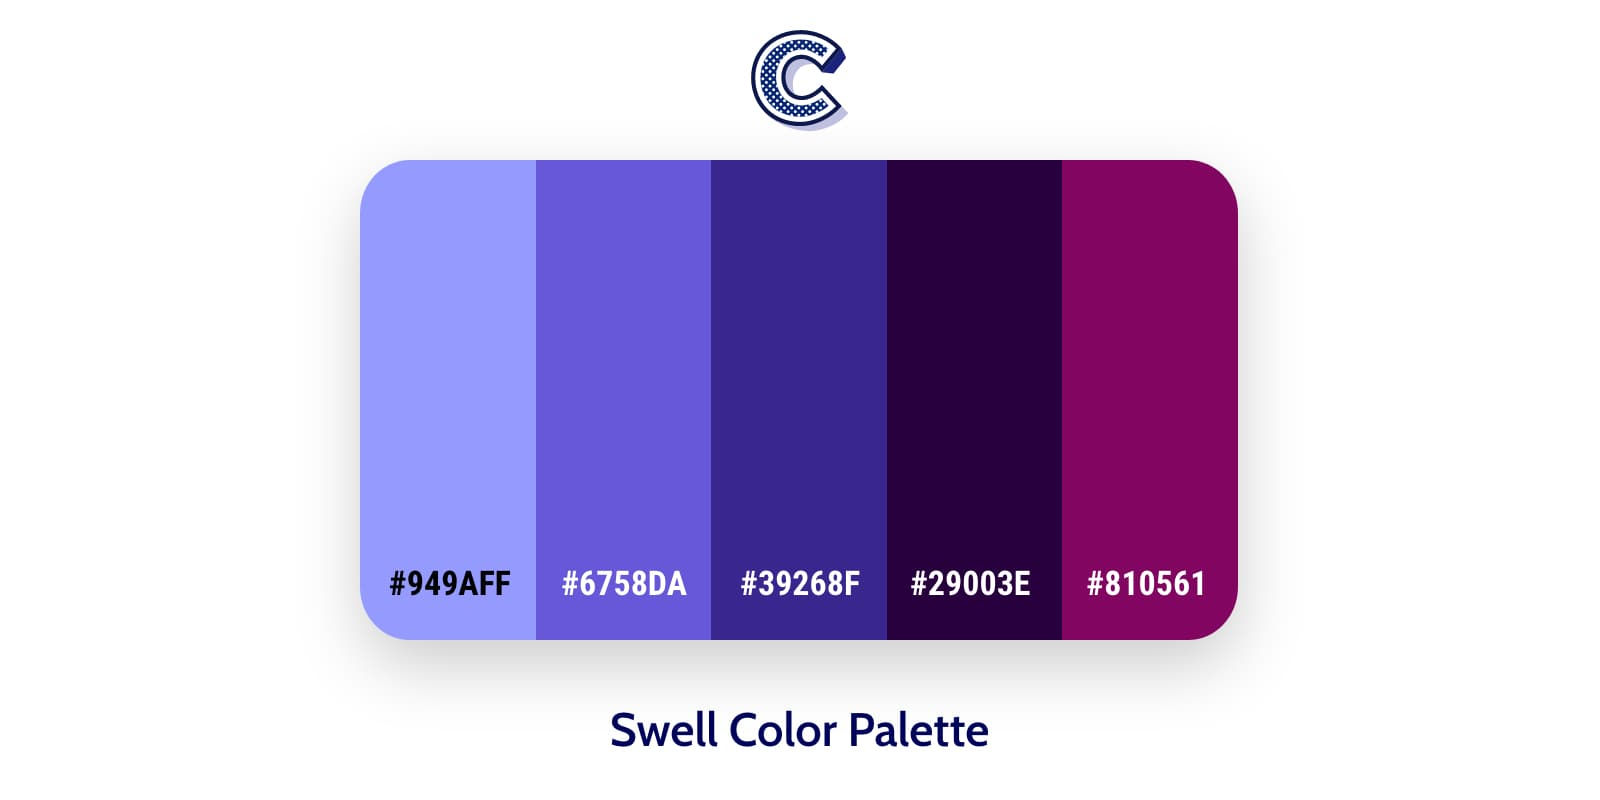 the featured image of swell color palette